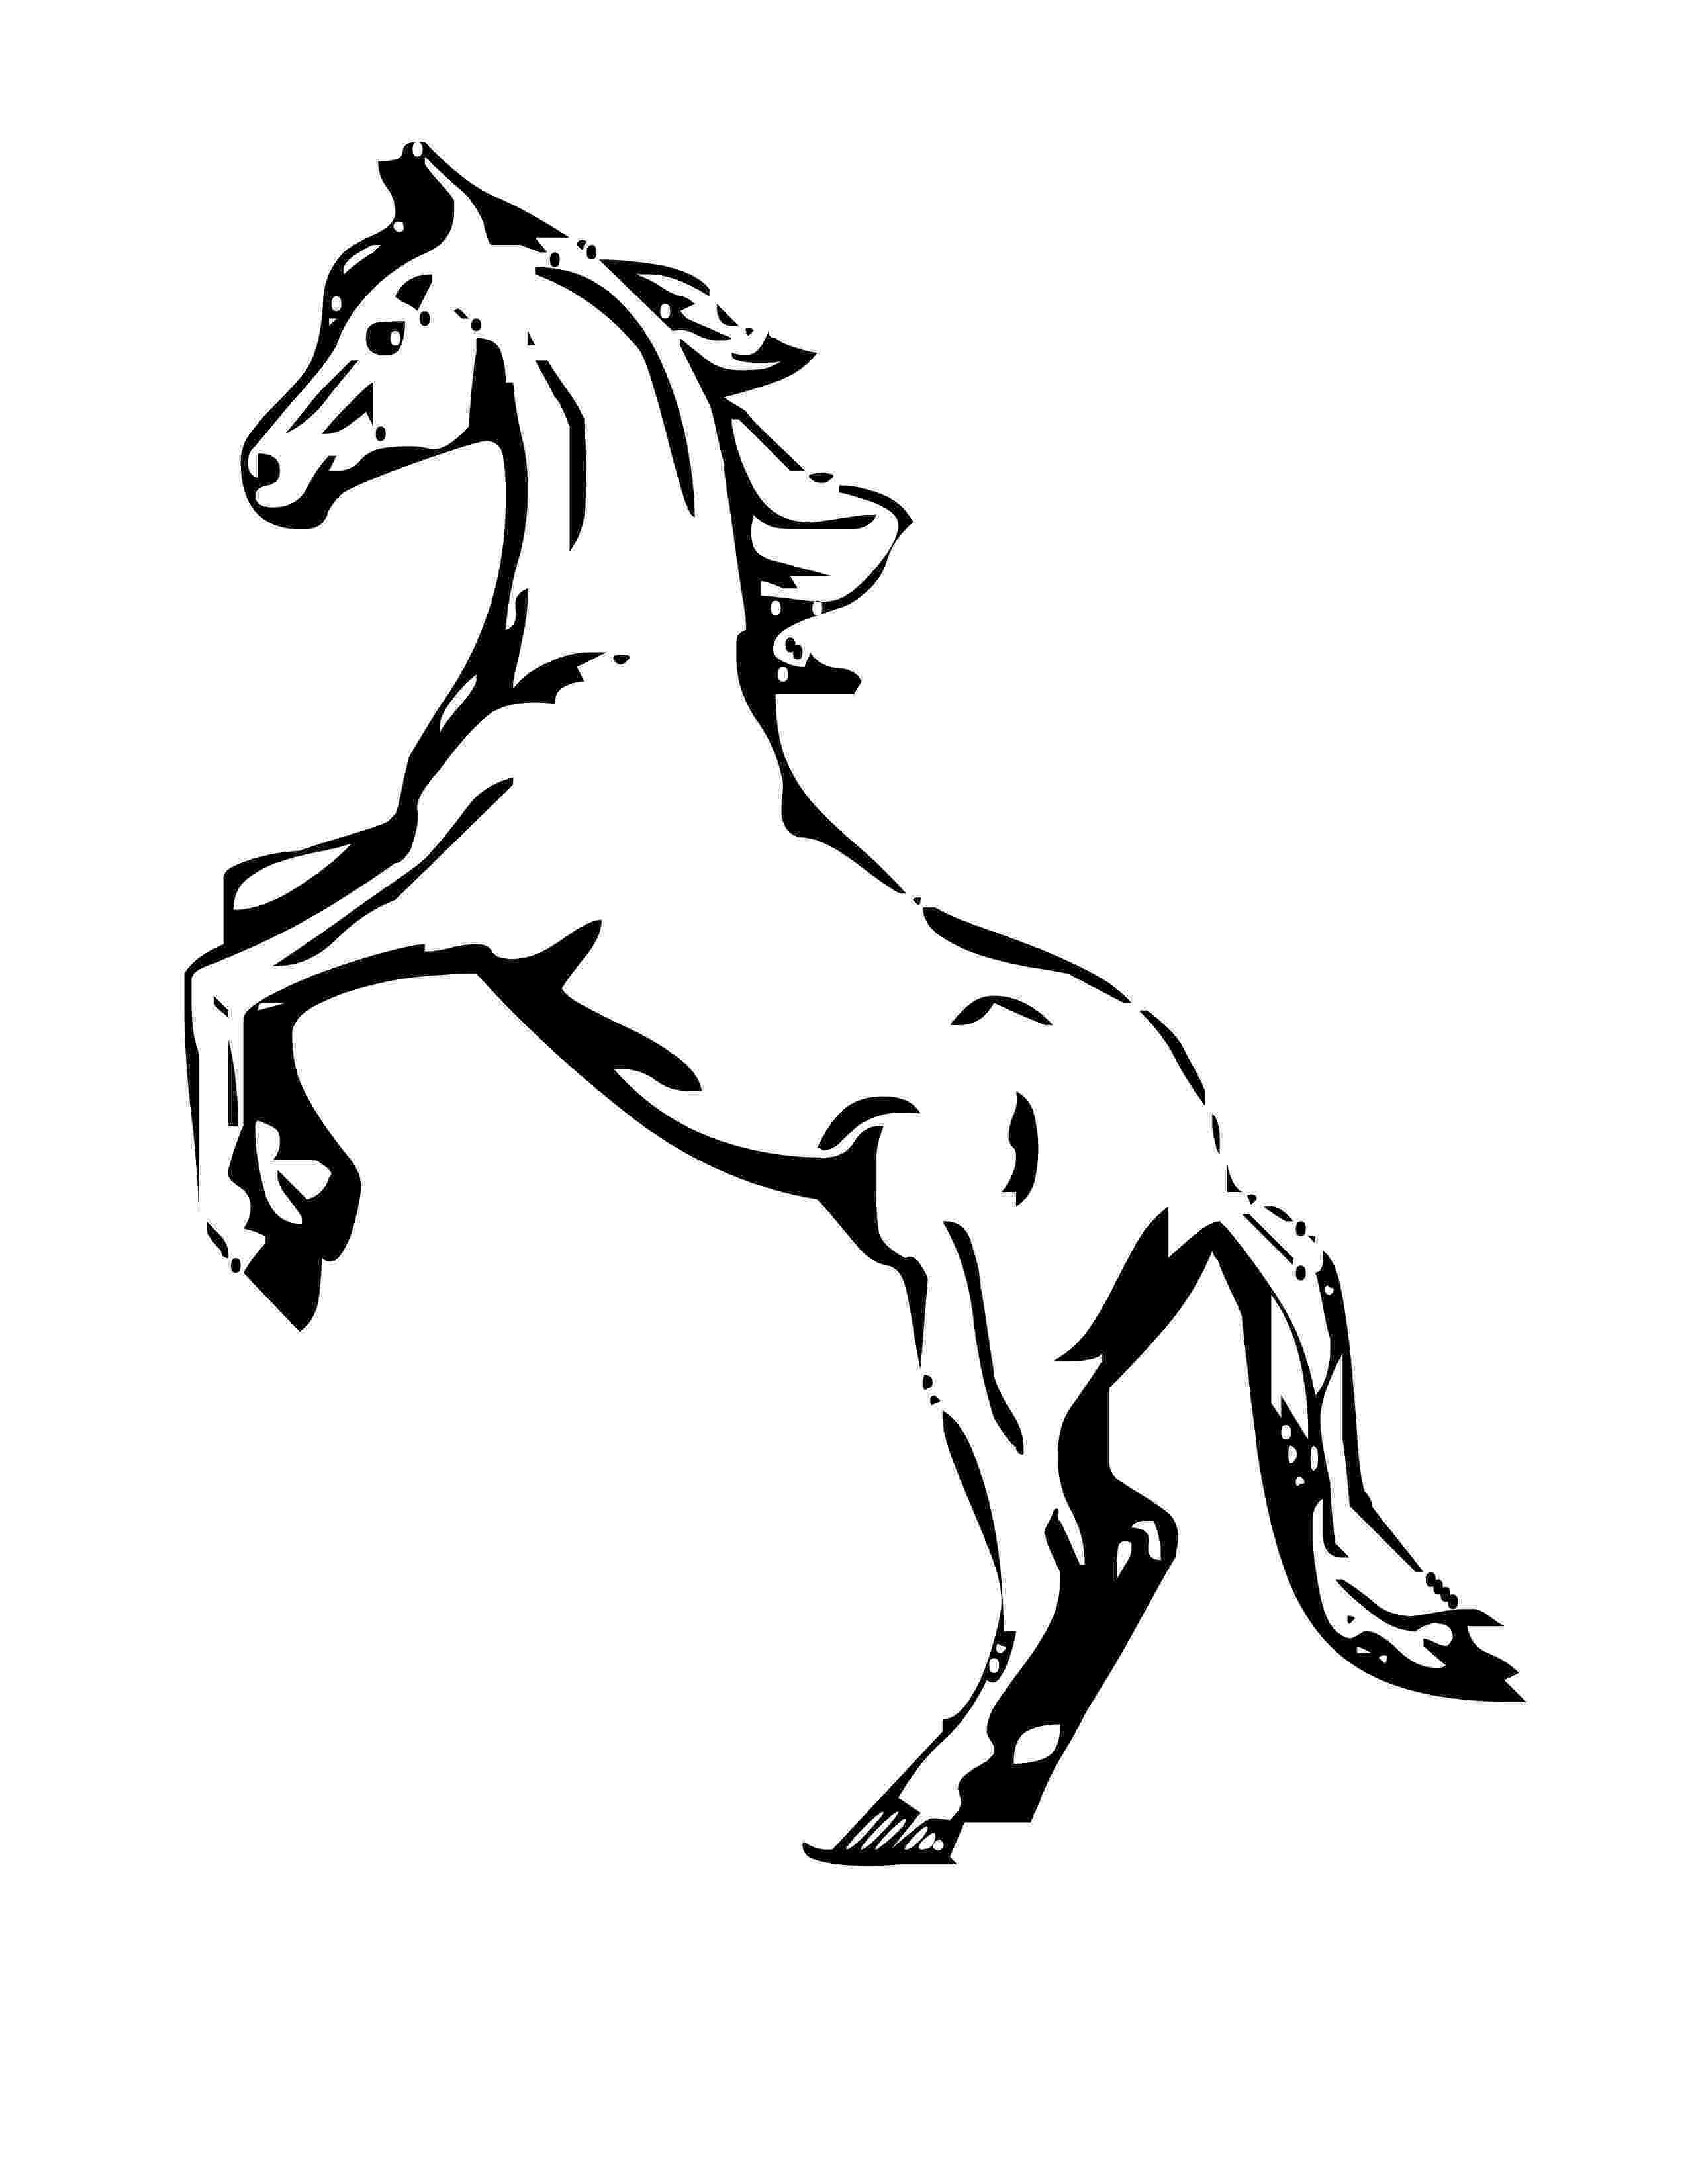 horse coloring images horse coloring pages for kids coloring pages for kids images horse coloring